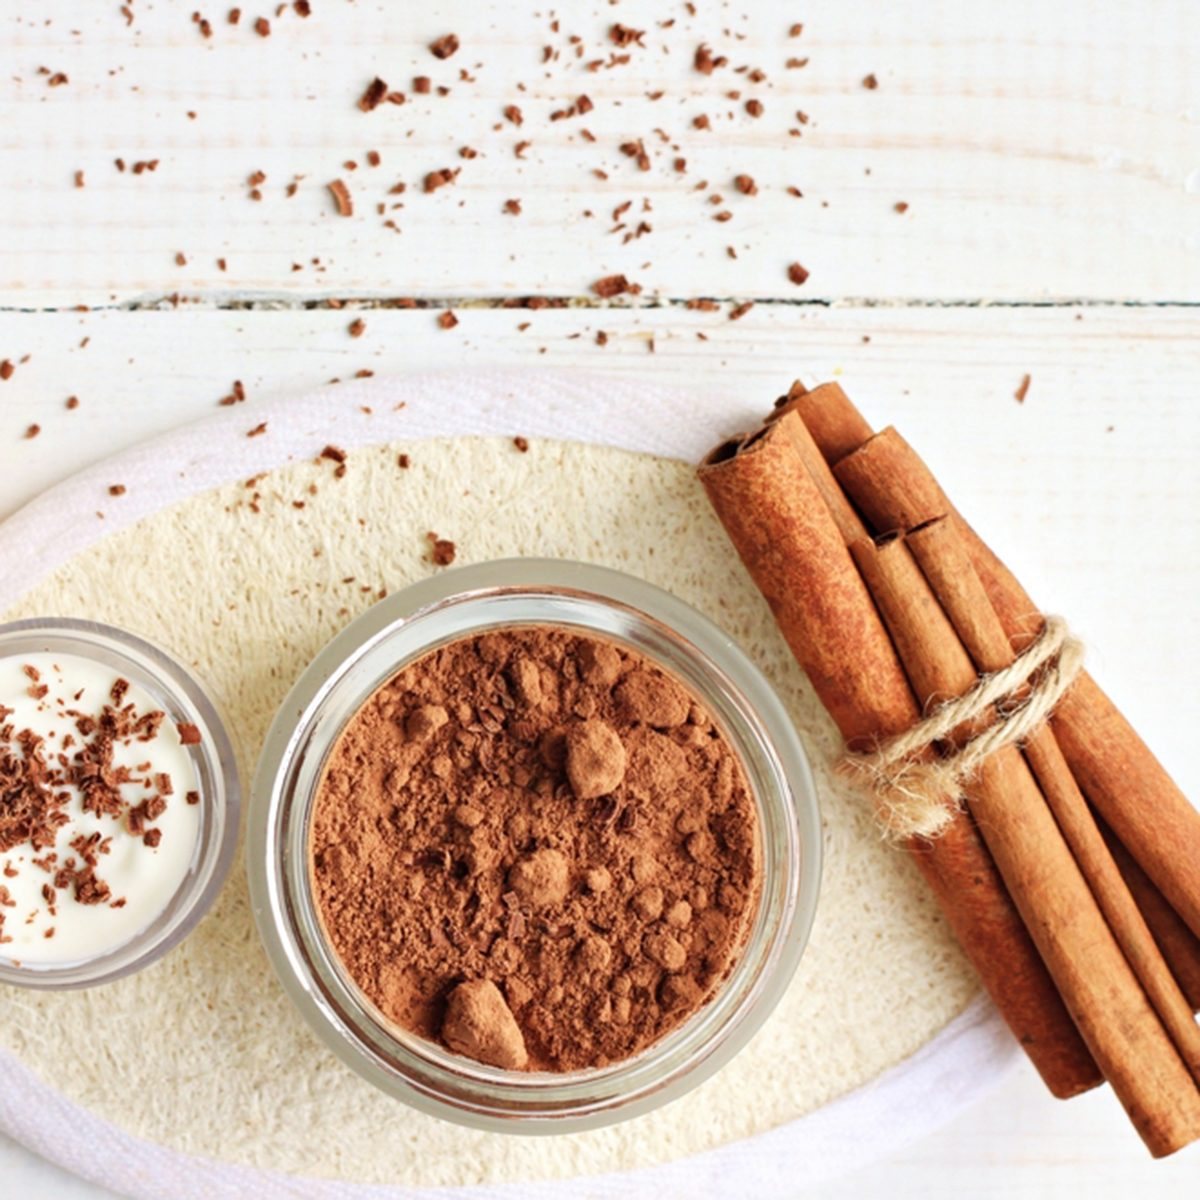 Chocolate skin treatment. Cosmetic jar with cocoa, cinnamon sticks, chocolate body butter.